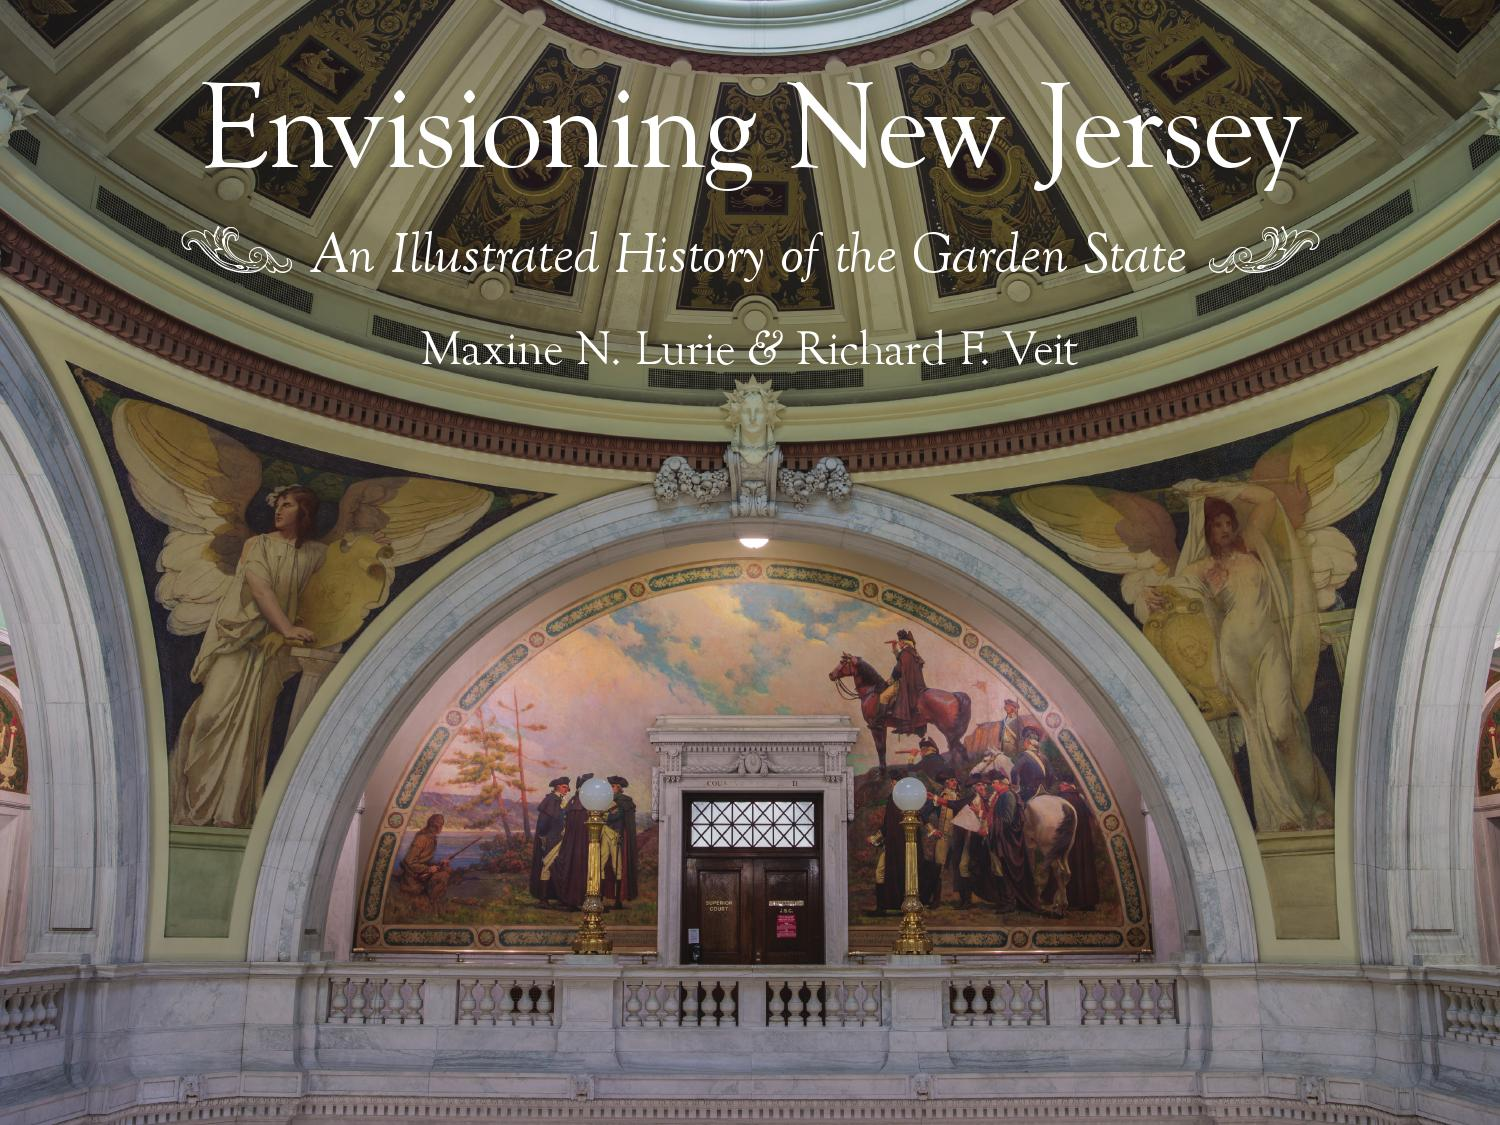 Envisioning New Jersey: An Illustrated History of the Garden State ...